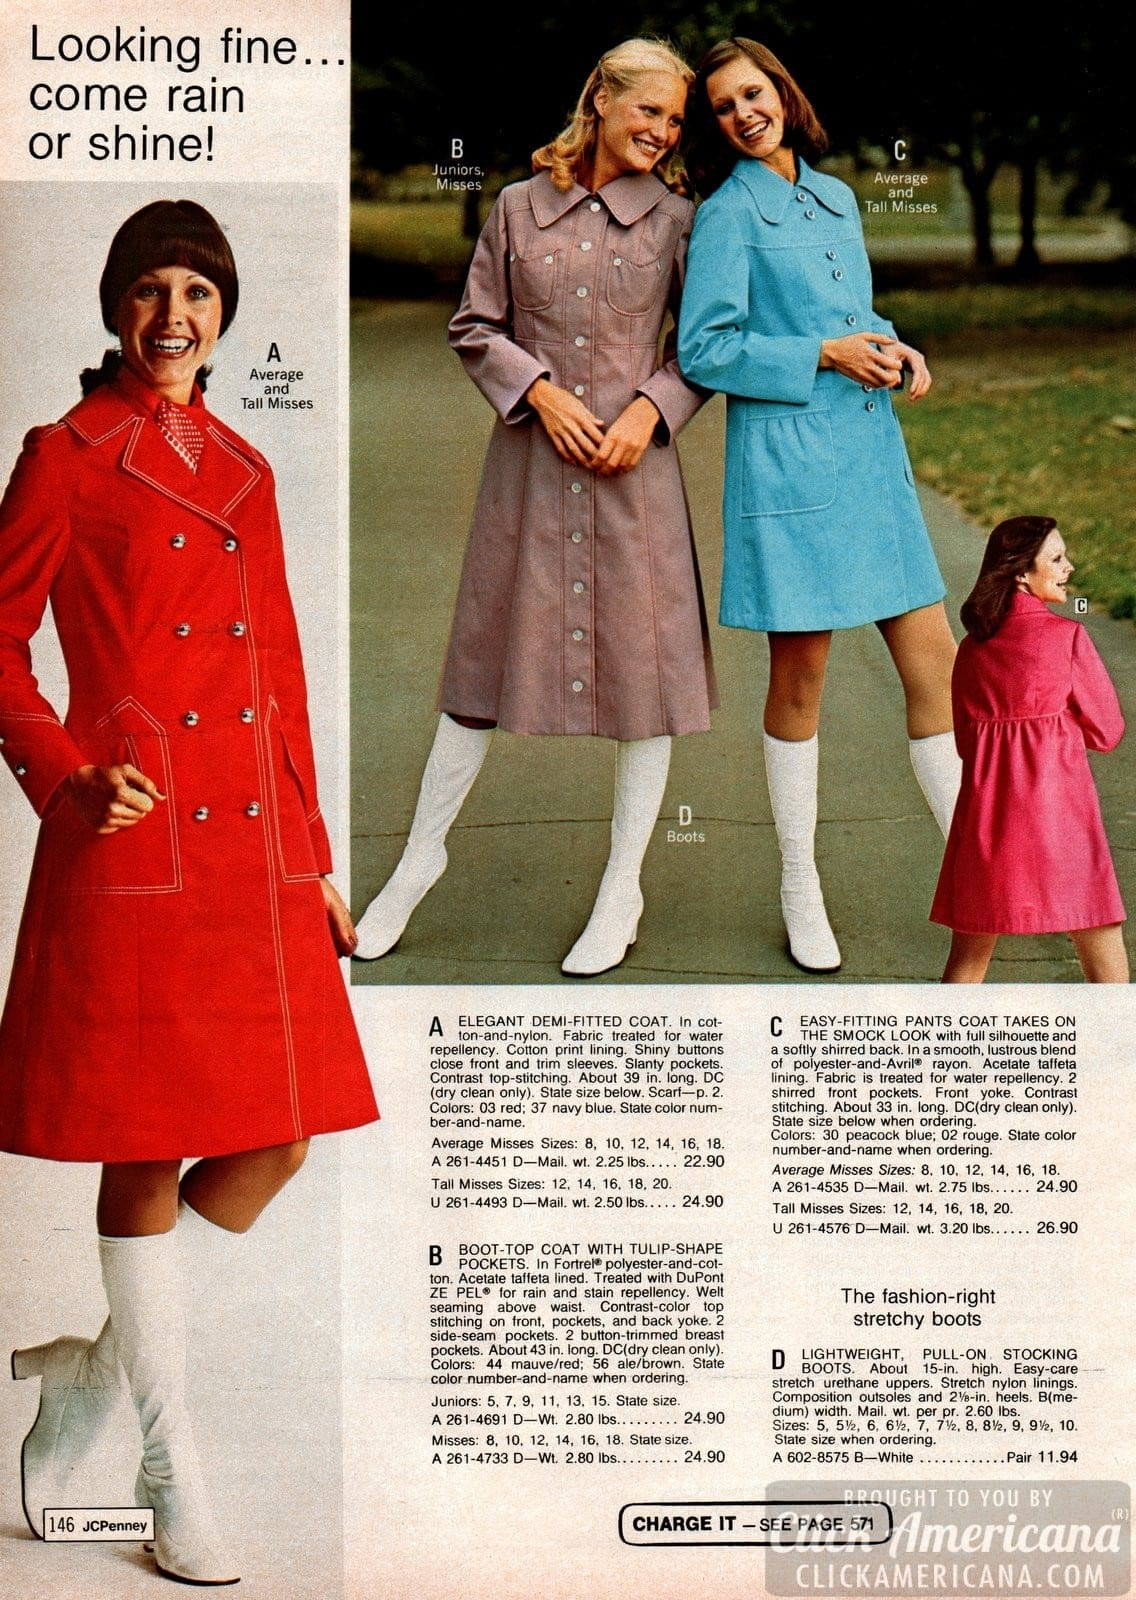 Vintage coats for women - boot-top coat with tulip-shaped pockets - plus stretch boots